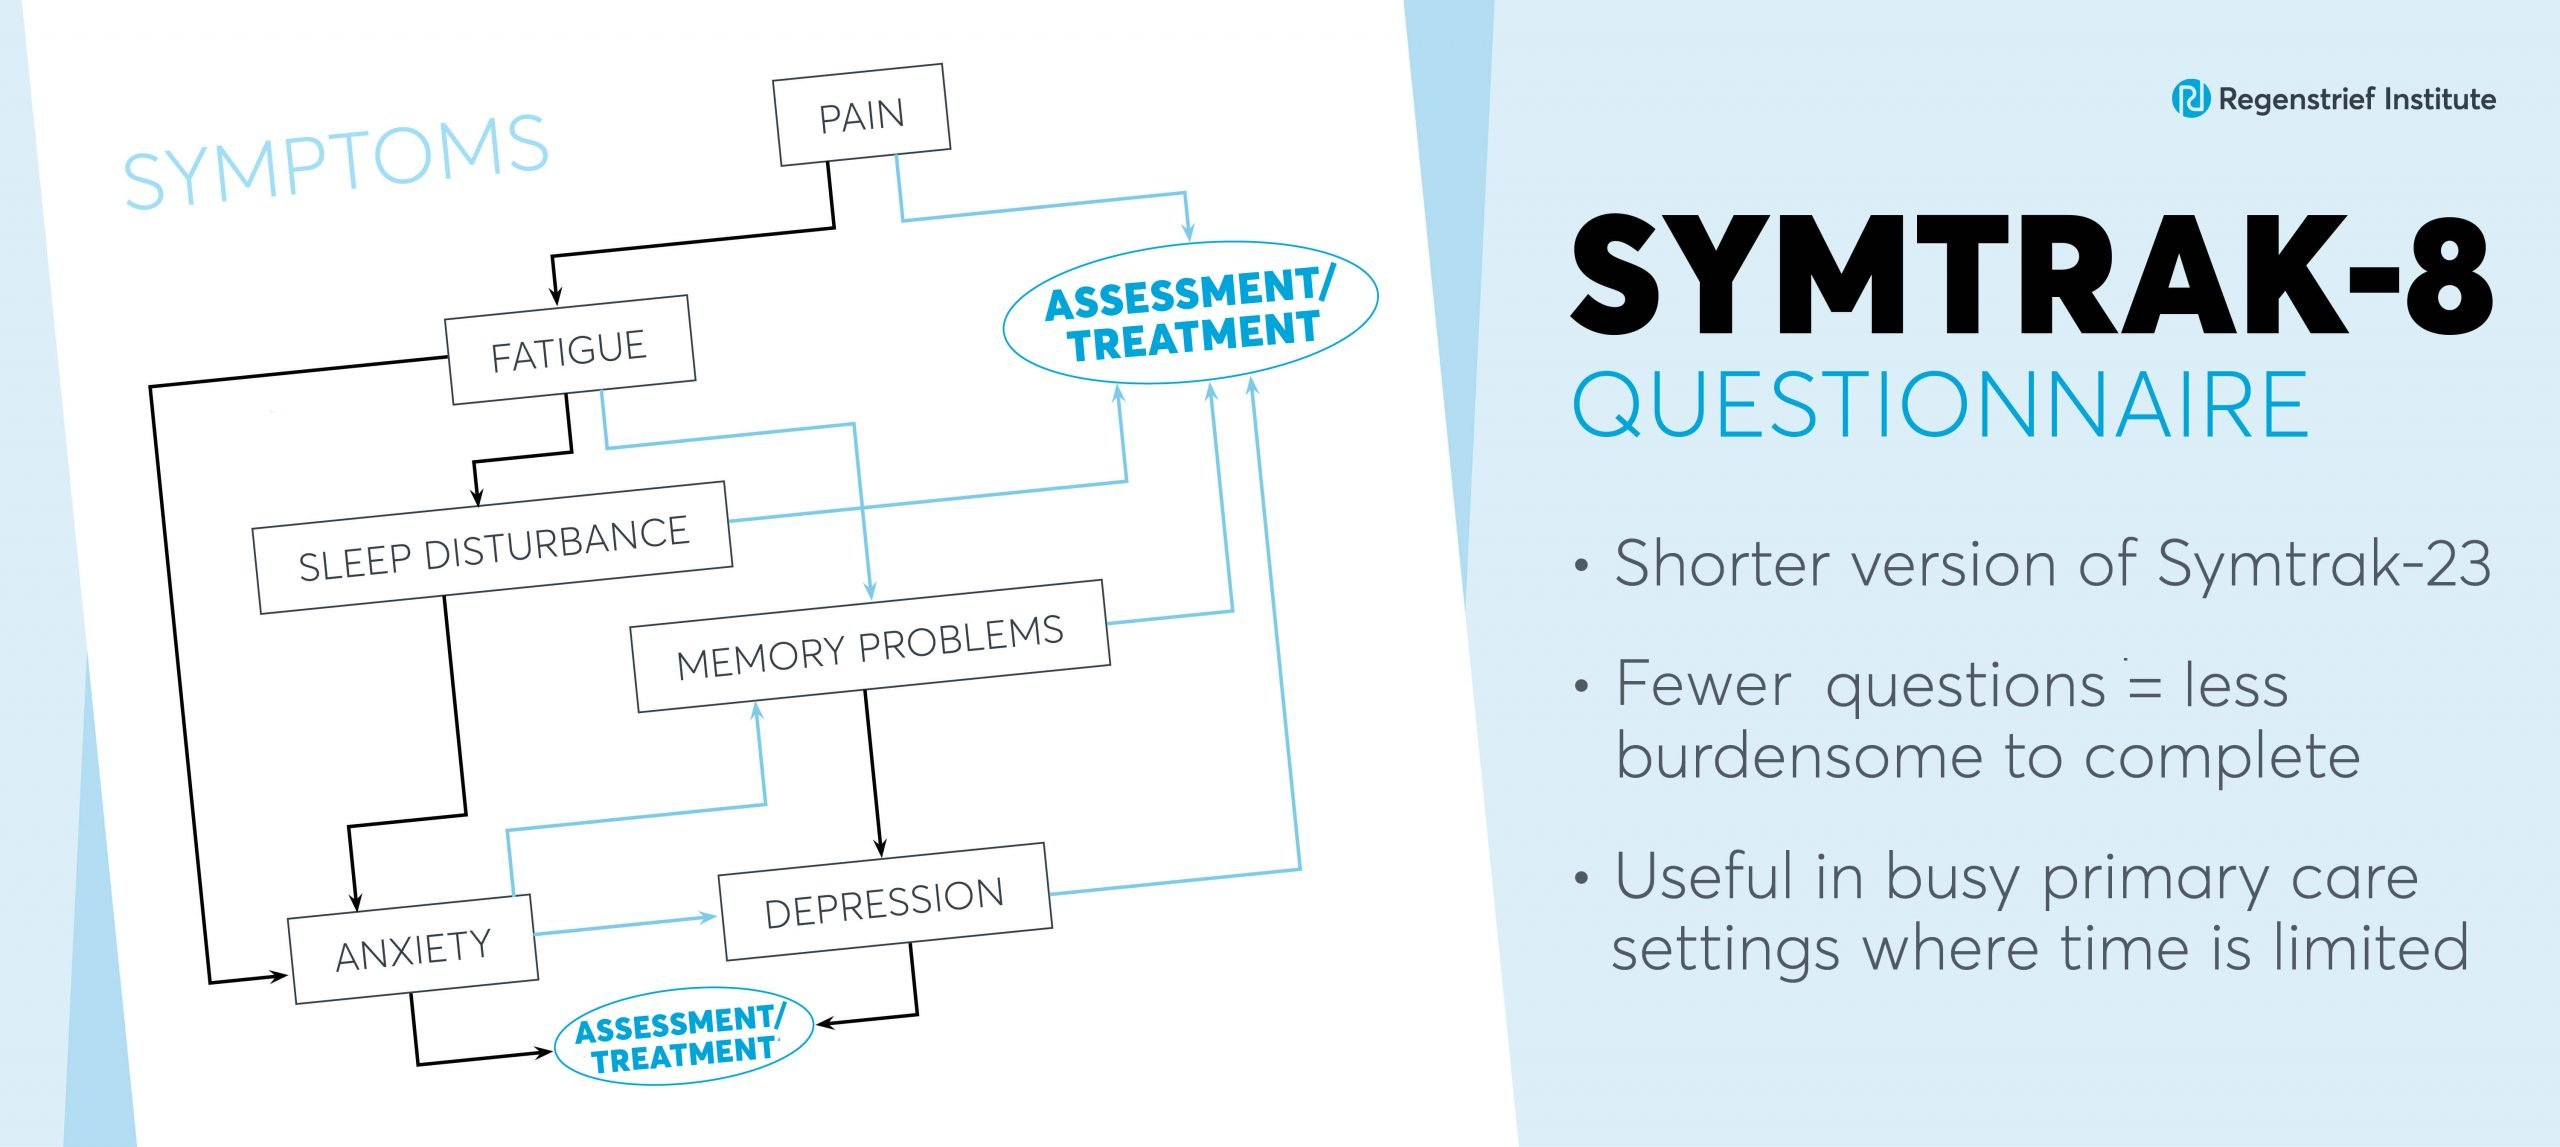 Brief survey tool tracks symptoms, aids in evaluating effectiveness of treatment